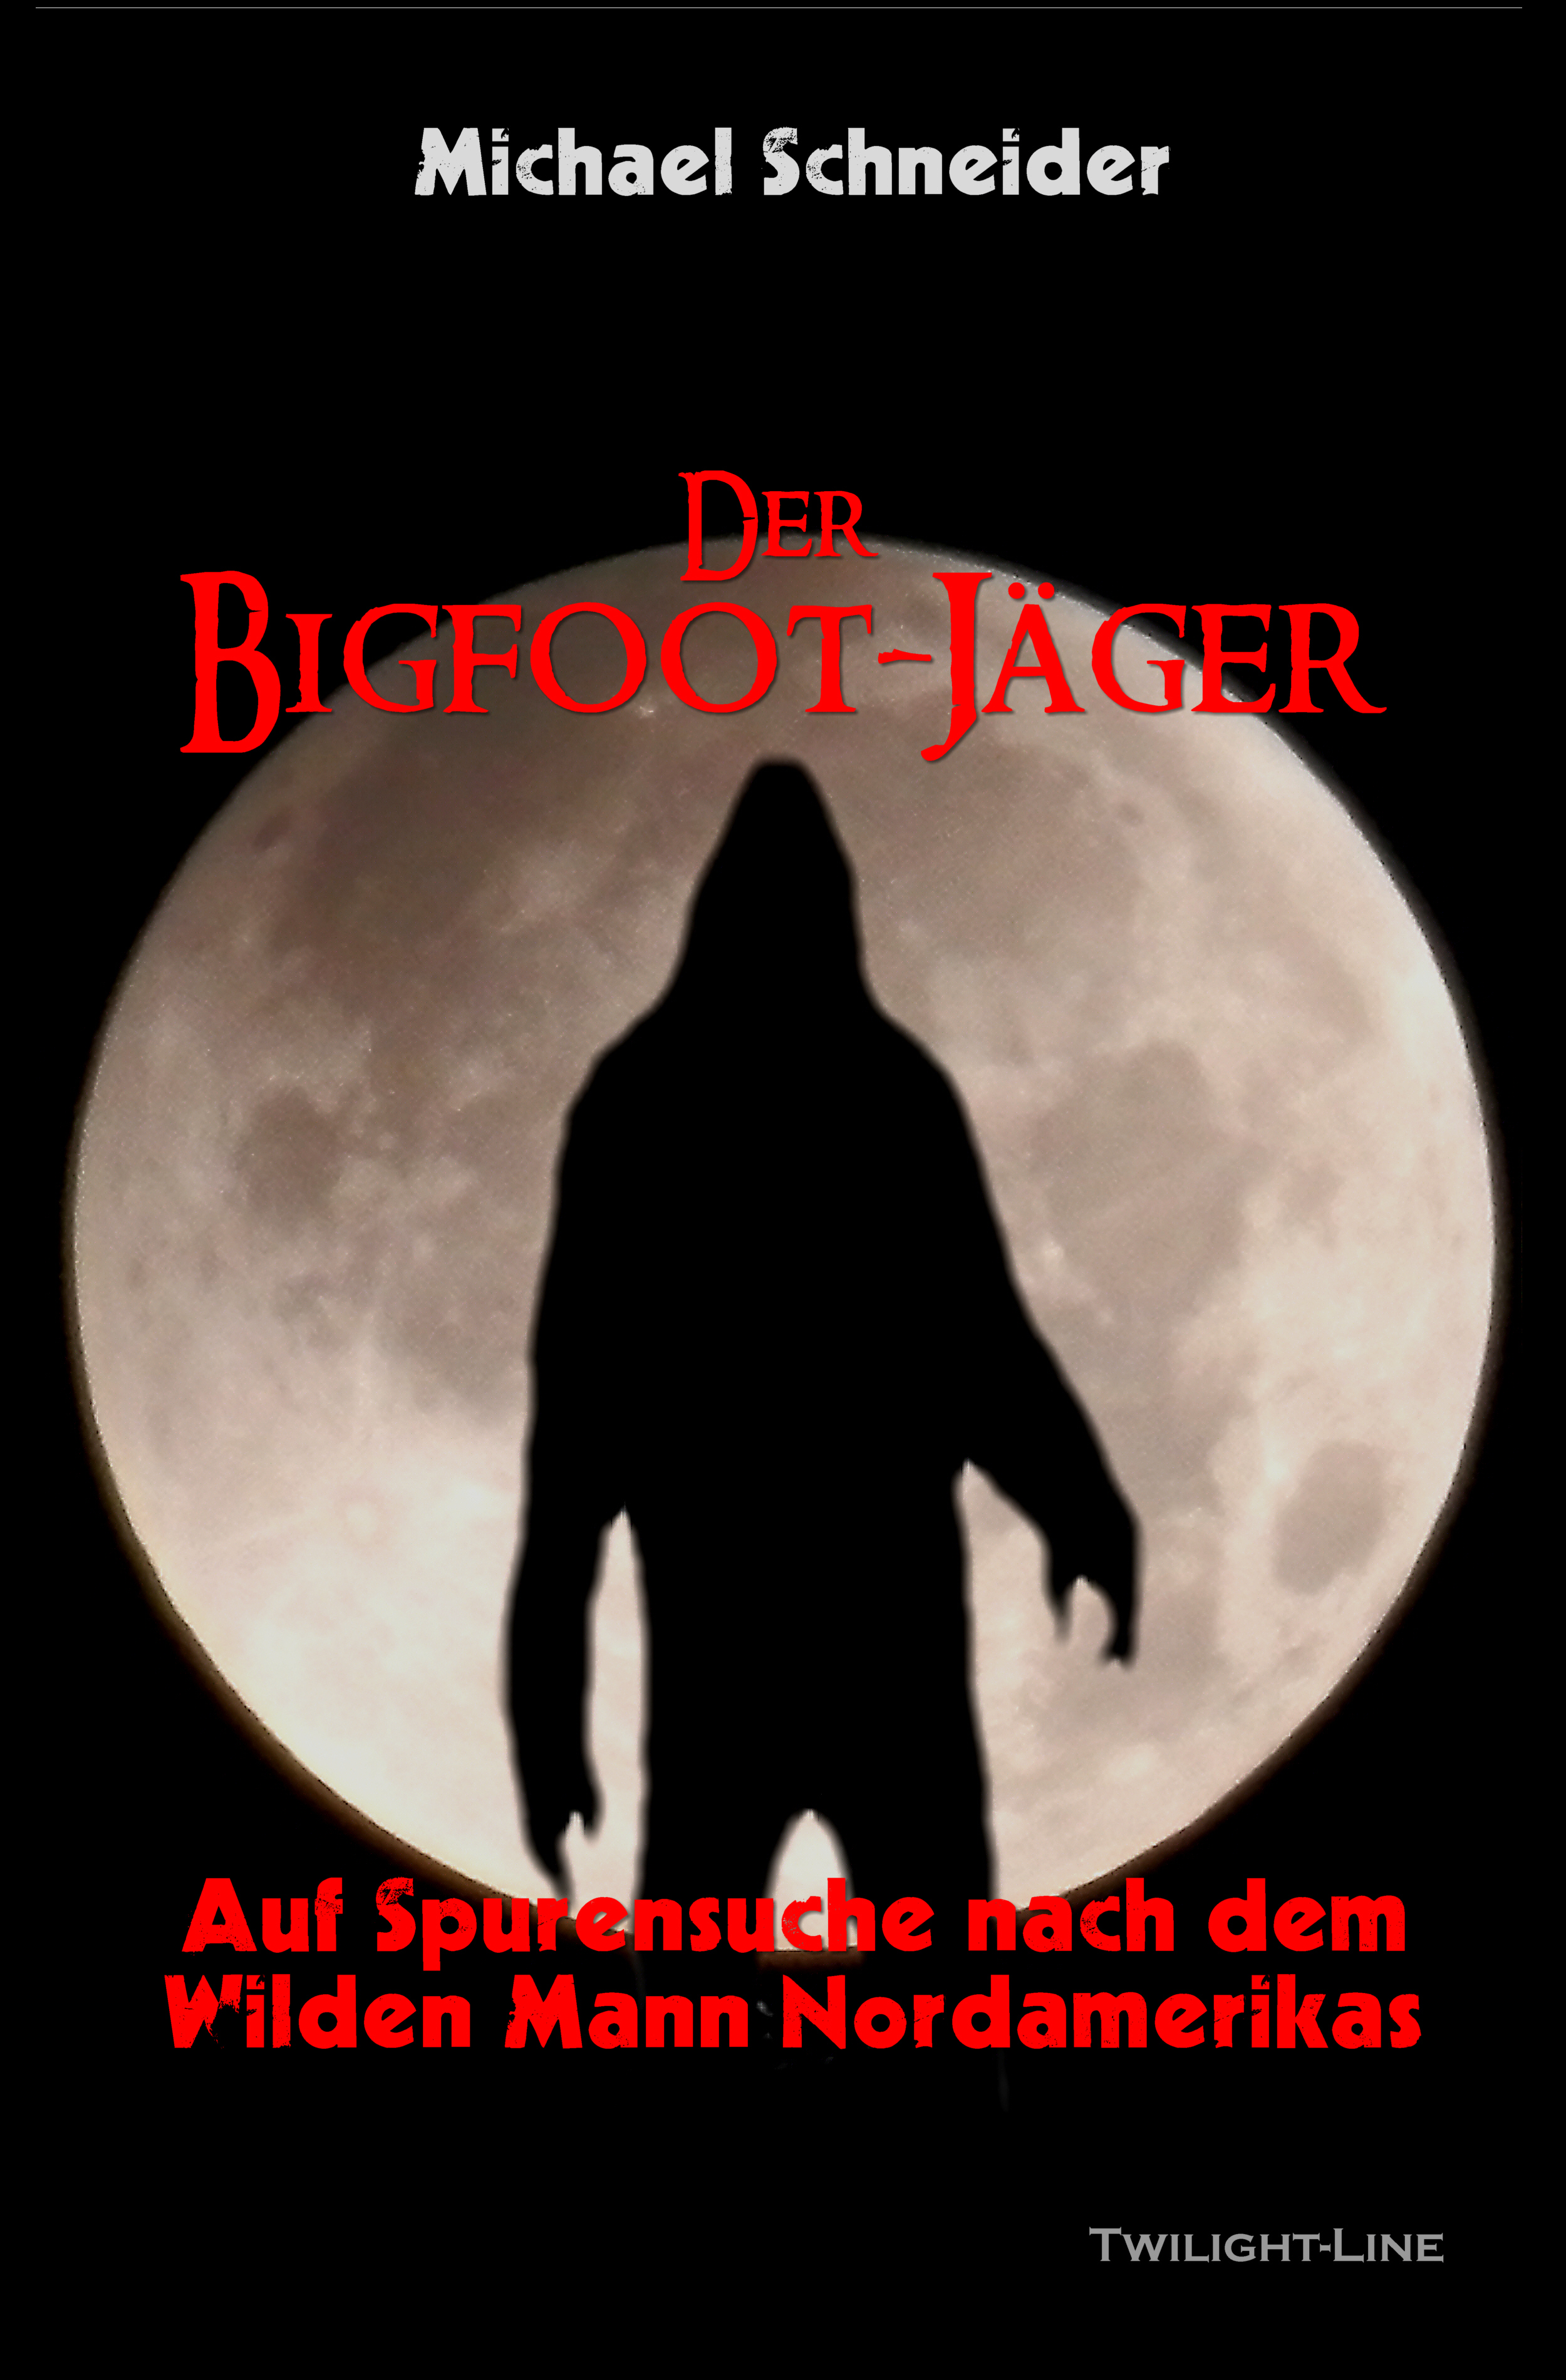 Der Bigfoot-Jäger